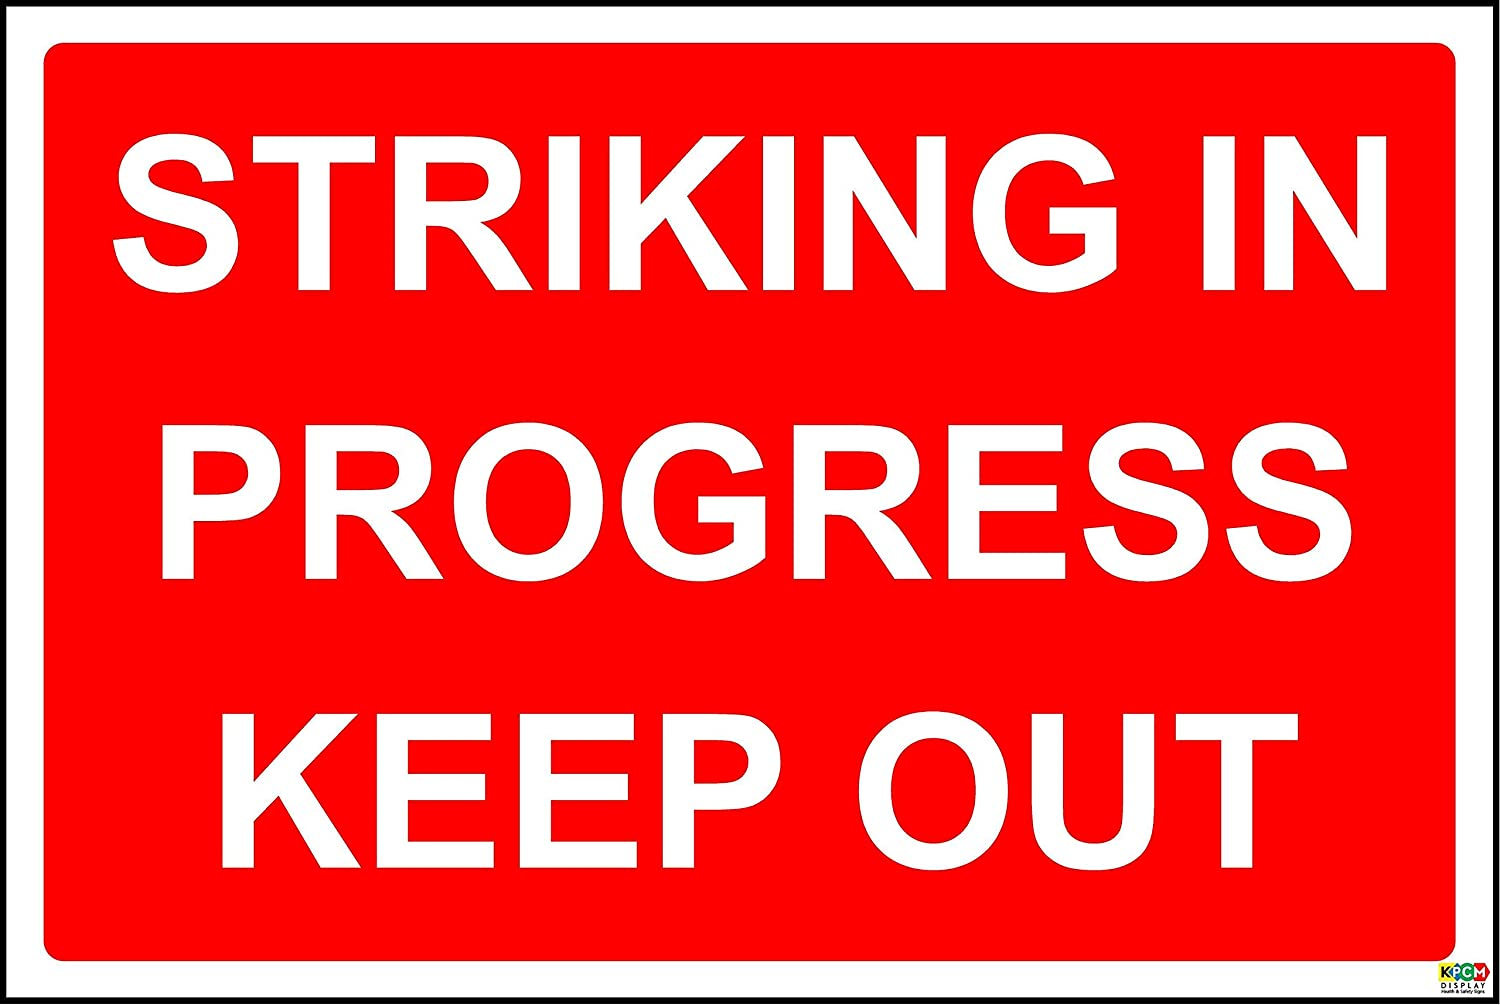 Striking in progress keep out safety sign - 1.2mm rigid plastic 400mm x 300mm